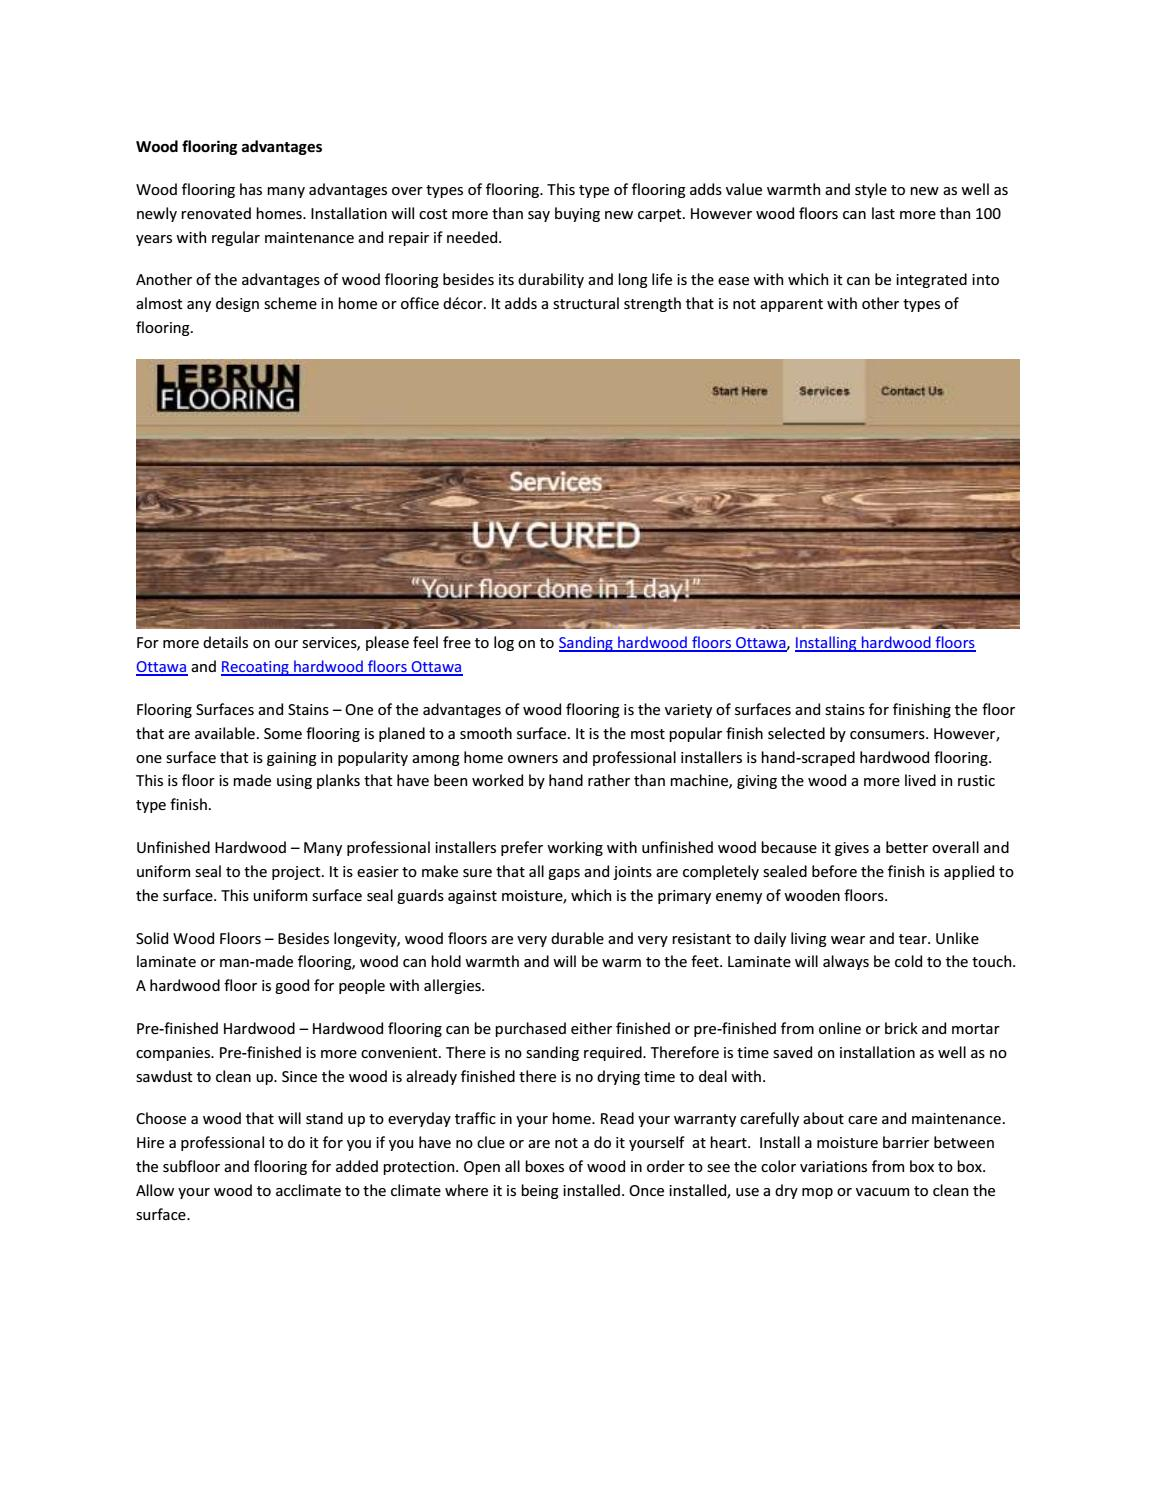 Wood Flooring Advantages By Lebrunflooring Issuu